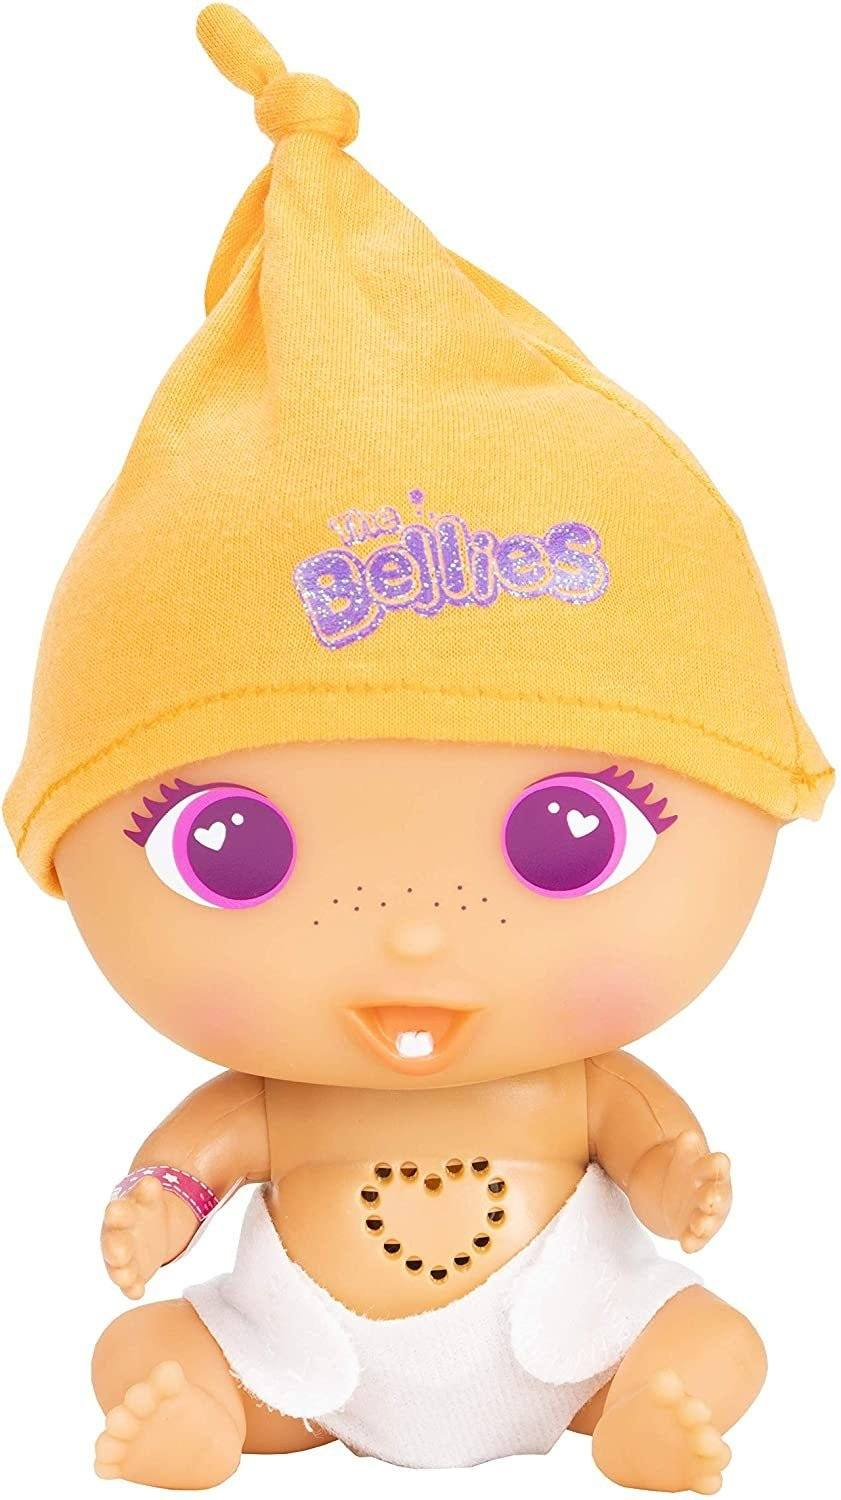 FAMOSA The Bellies Willy Woof Interactive Doll - TOYBOX Toy Shop